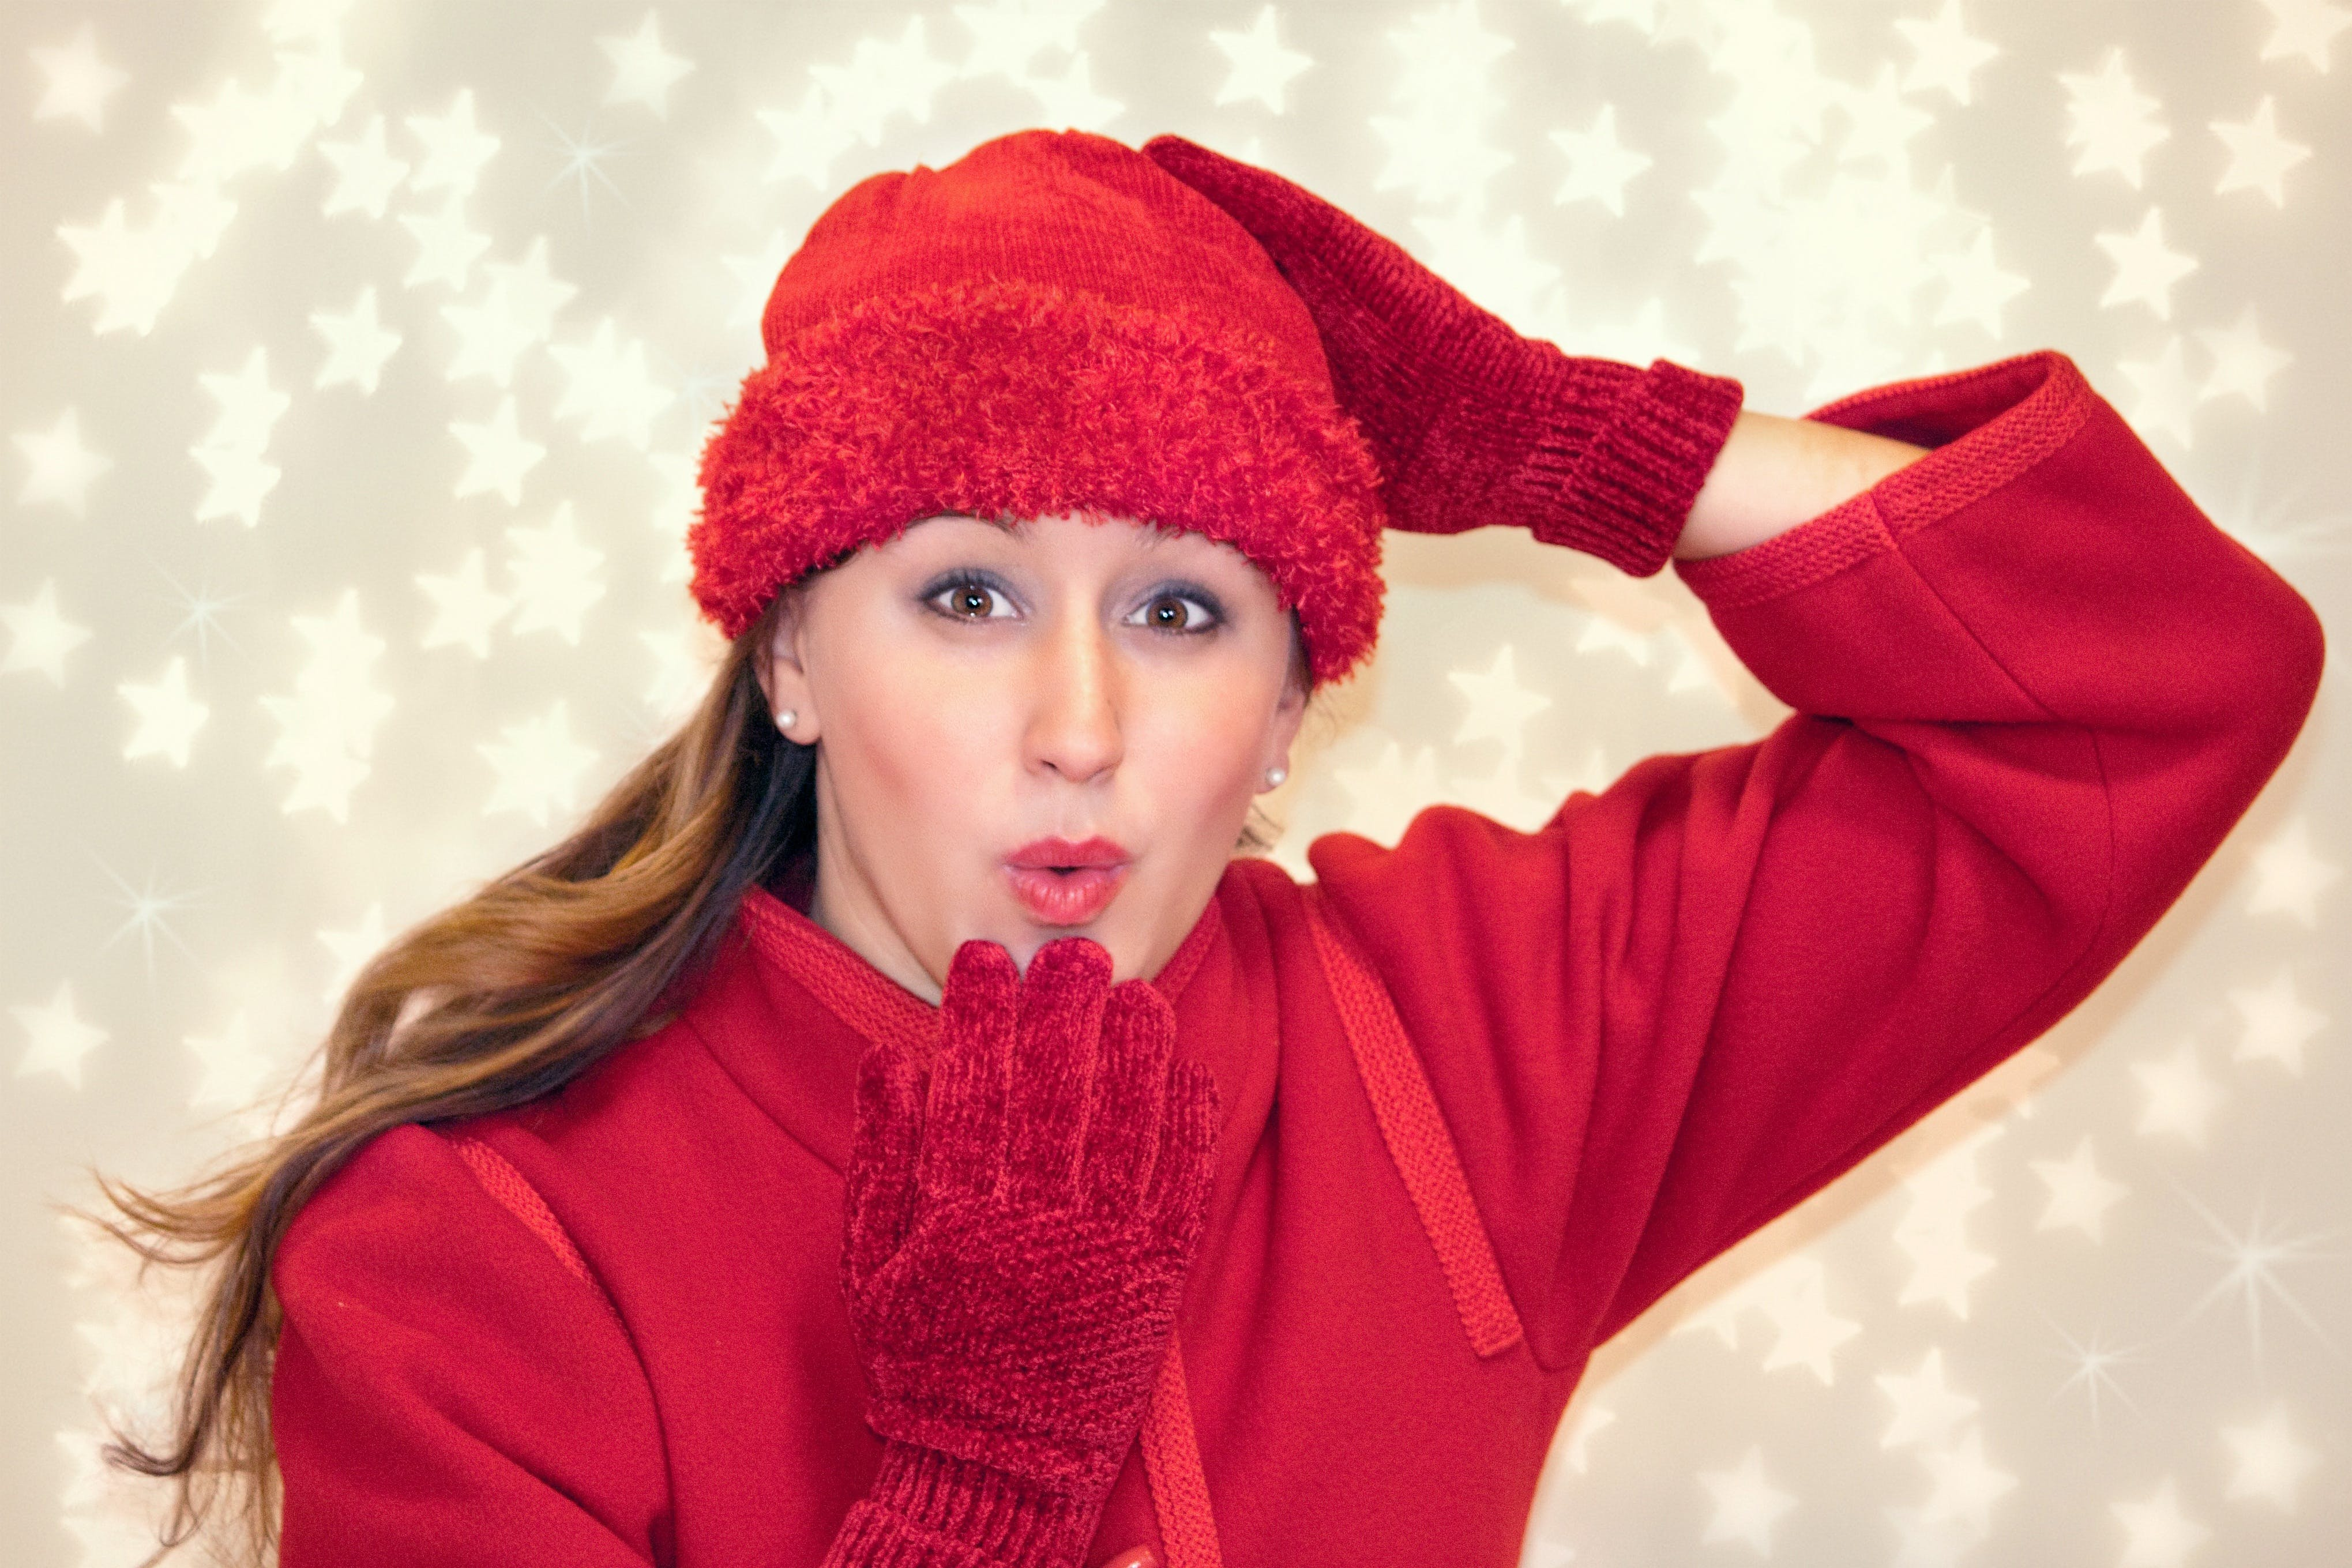 Woman Wearing Red Knitted Hat Doing Pose